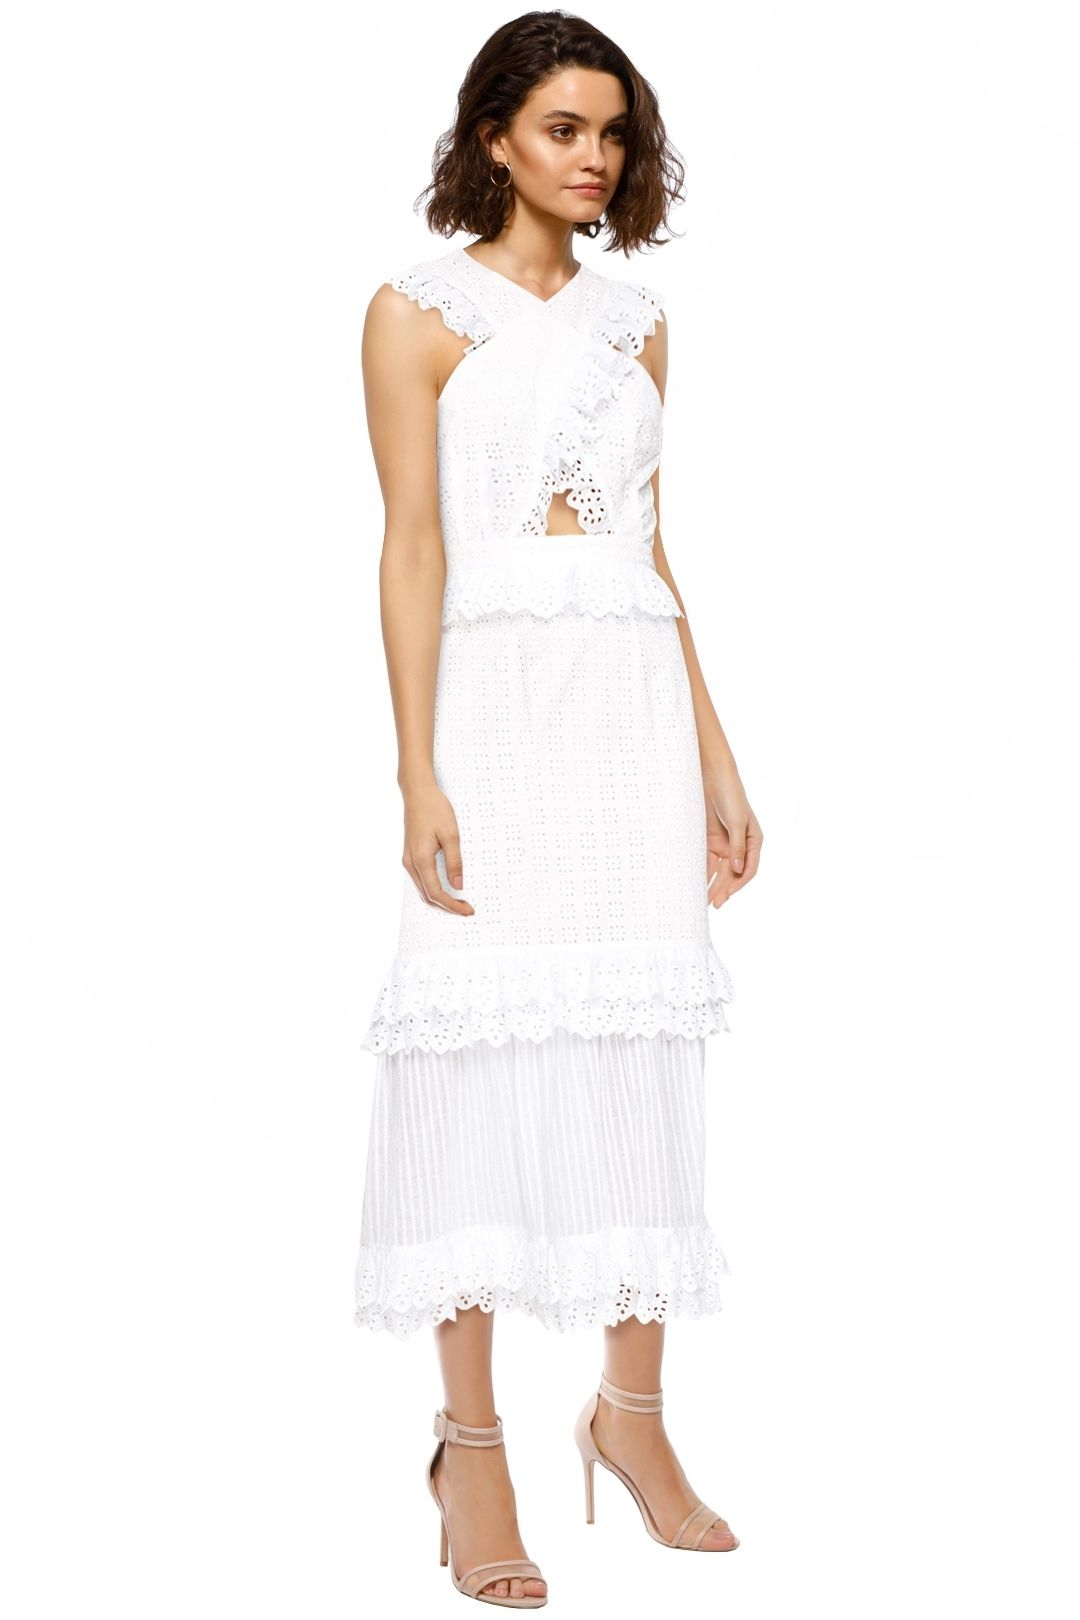 Alice McCall - Everything She Wants Dress - Porcelain White - Side